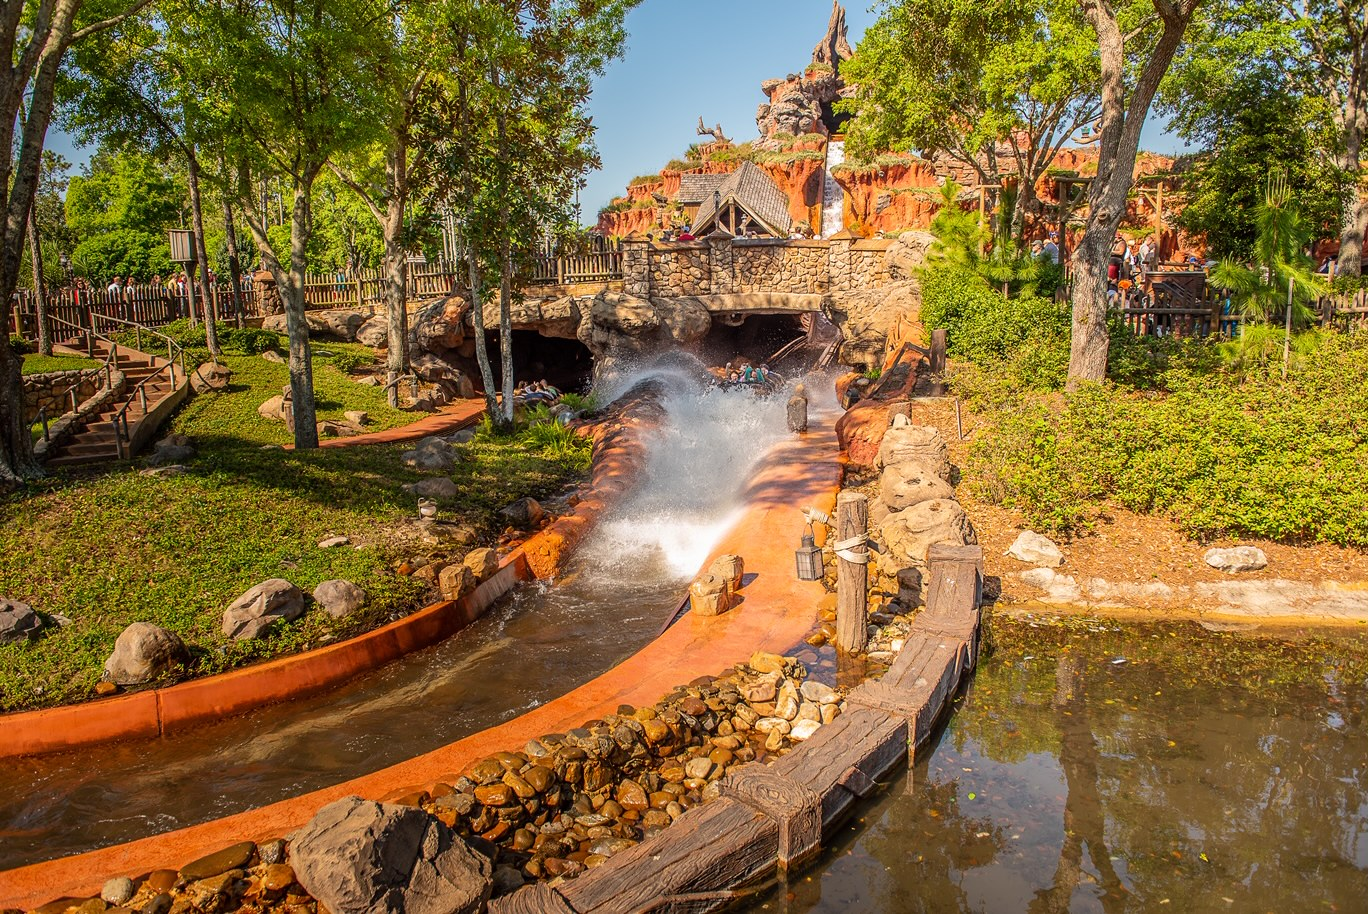 The best Magic Kingdom ride, Splash Mountain, coming down one of the drops with a big splash.